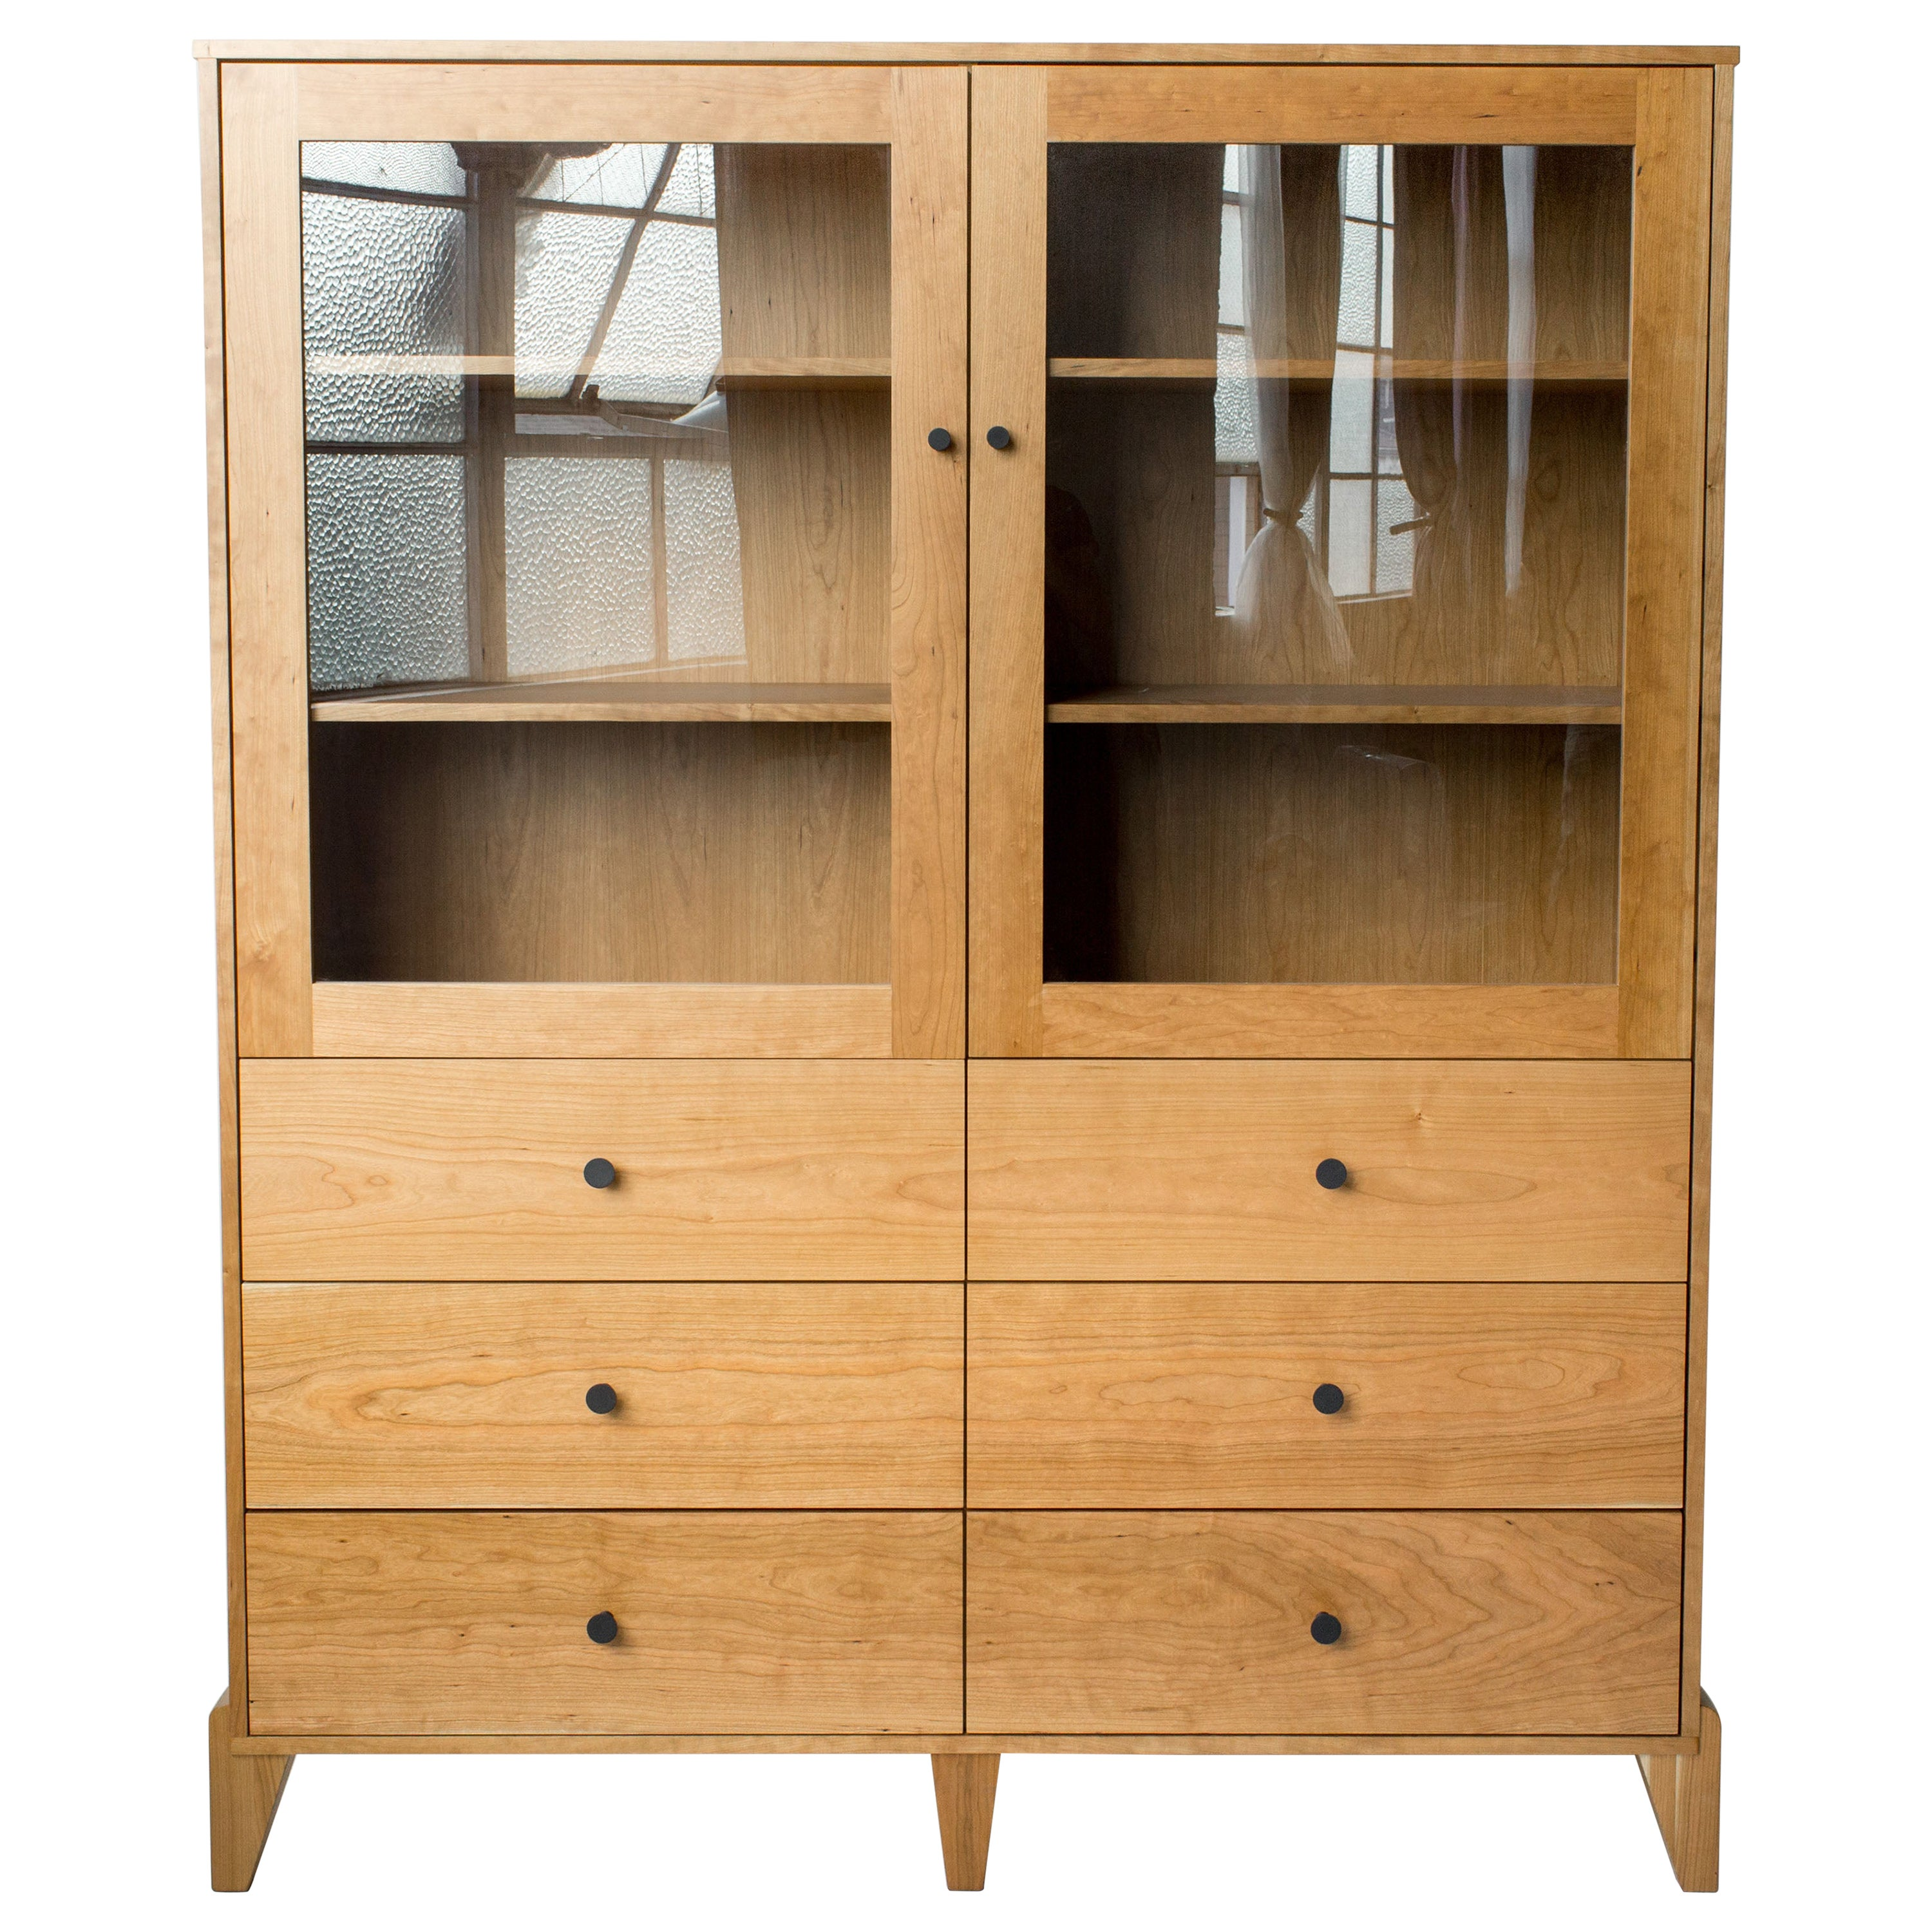 Pacific Curio Cabinet in Cherry by Studio Moe